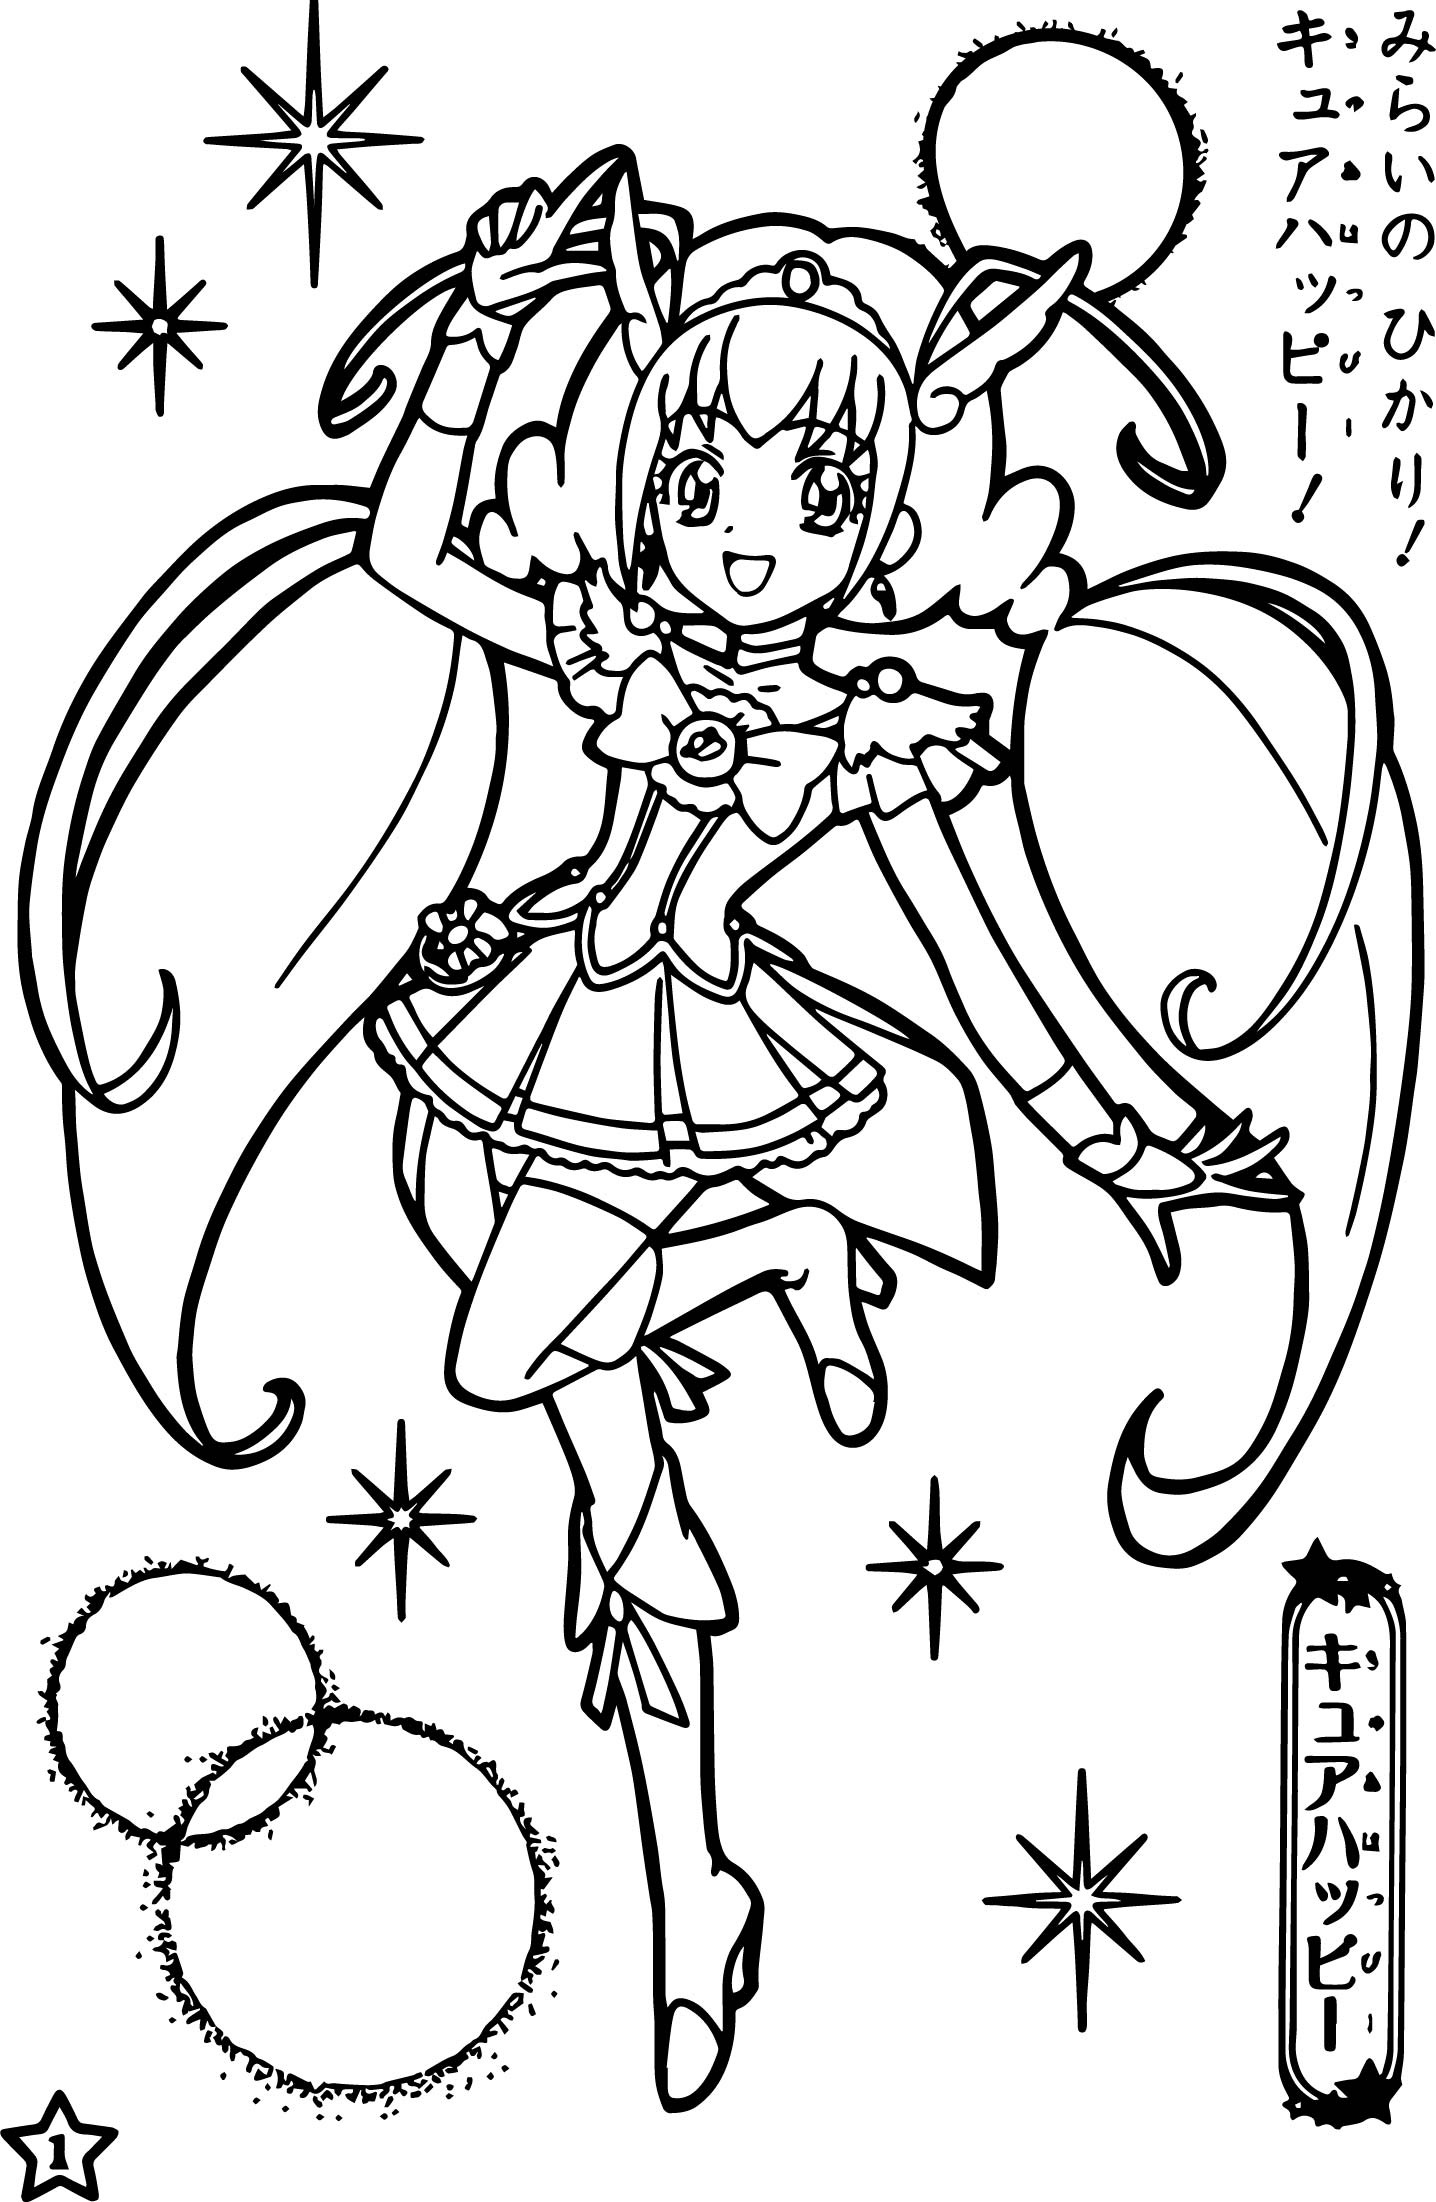 Smile Pretty Cure Glitter Force Coloring Pages | Wecoloringpage.com